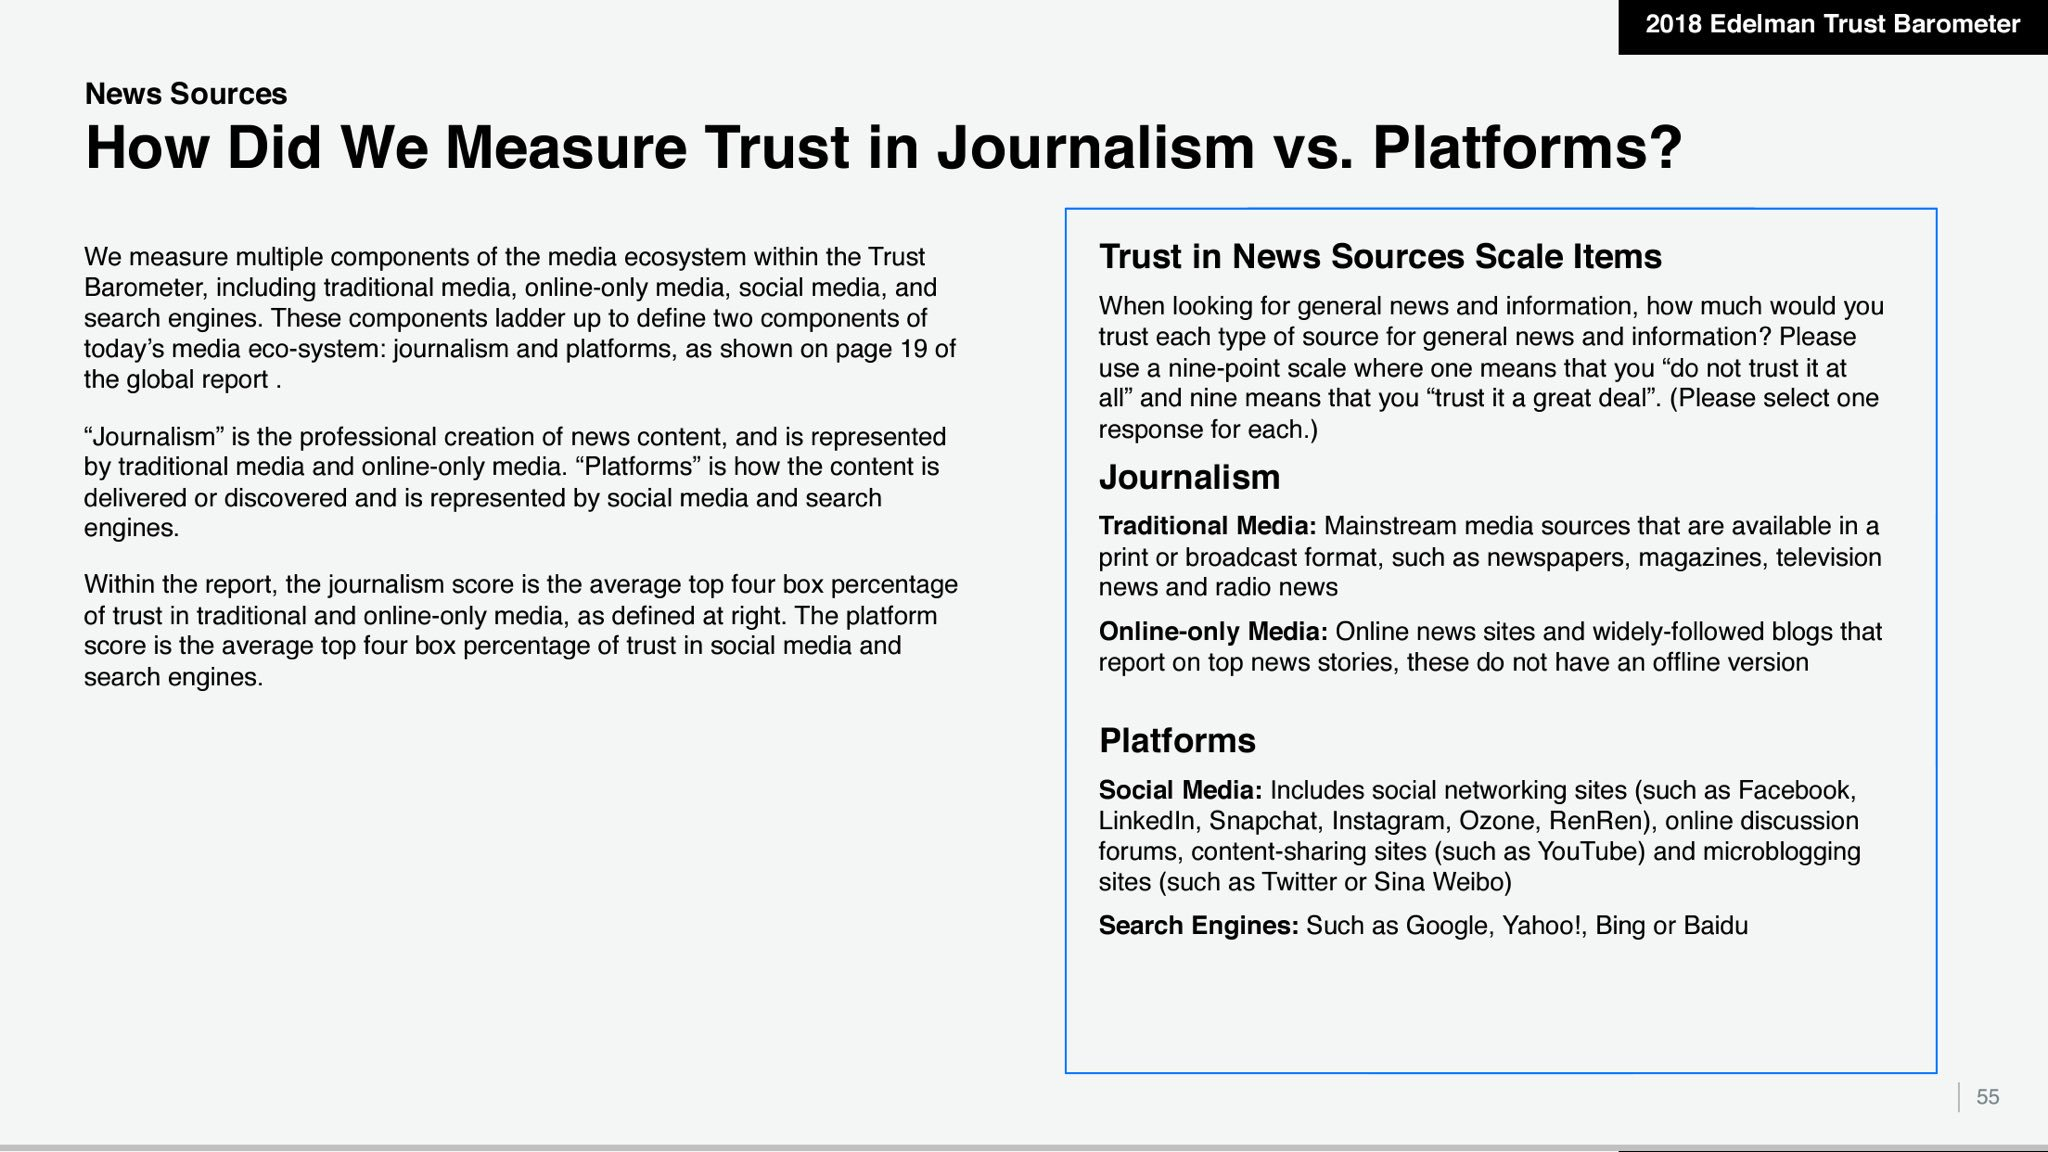 David carroll on twitter very interesting to review edelmans david carroll on twitter very interesting to review edelmans methodology splicing apart journalism from platforms as a function of news consumption ccuart Image collections